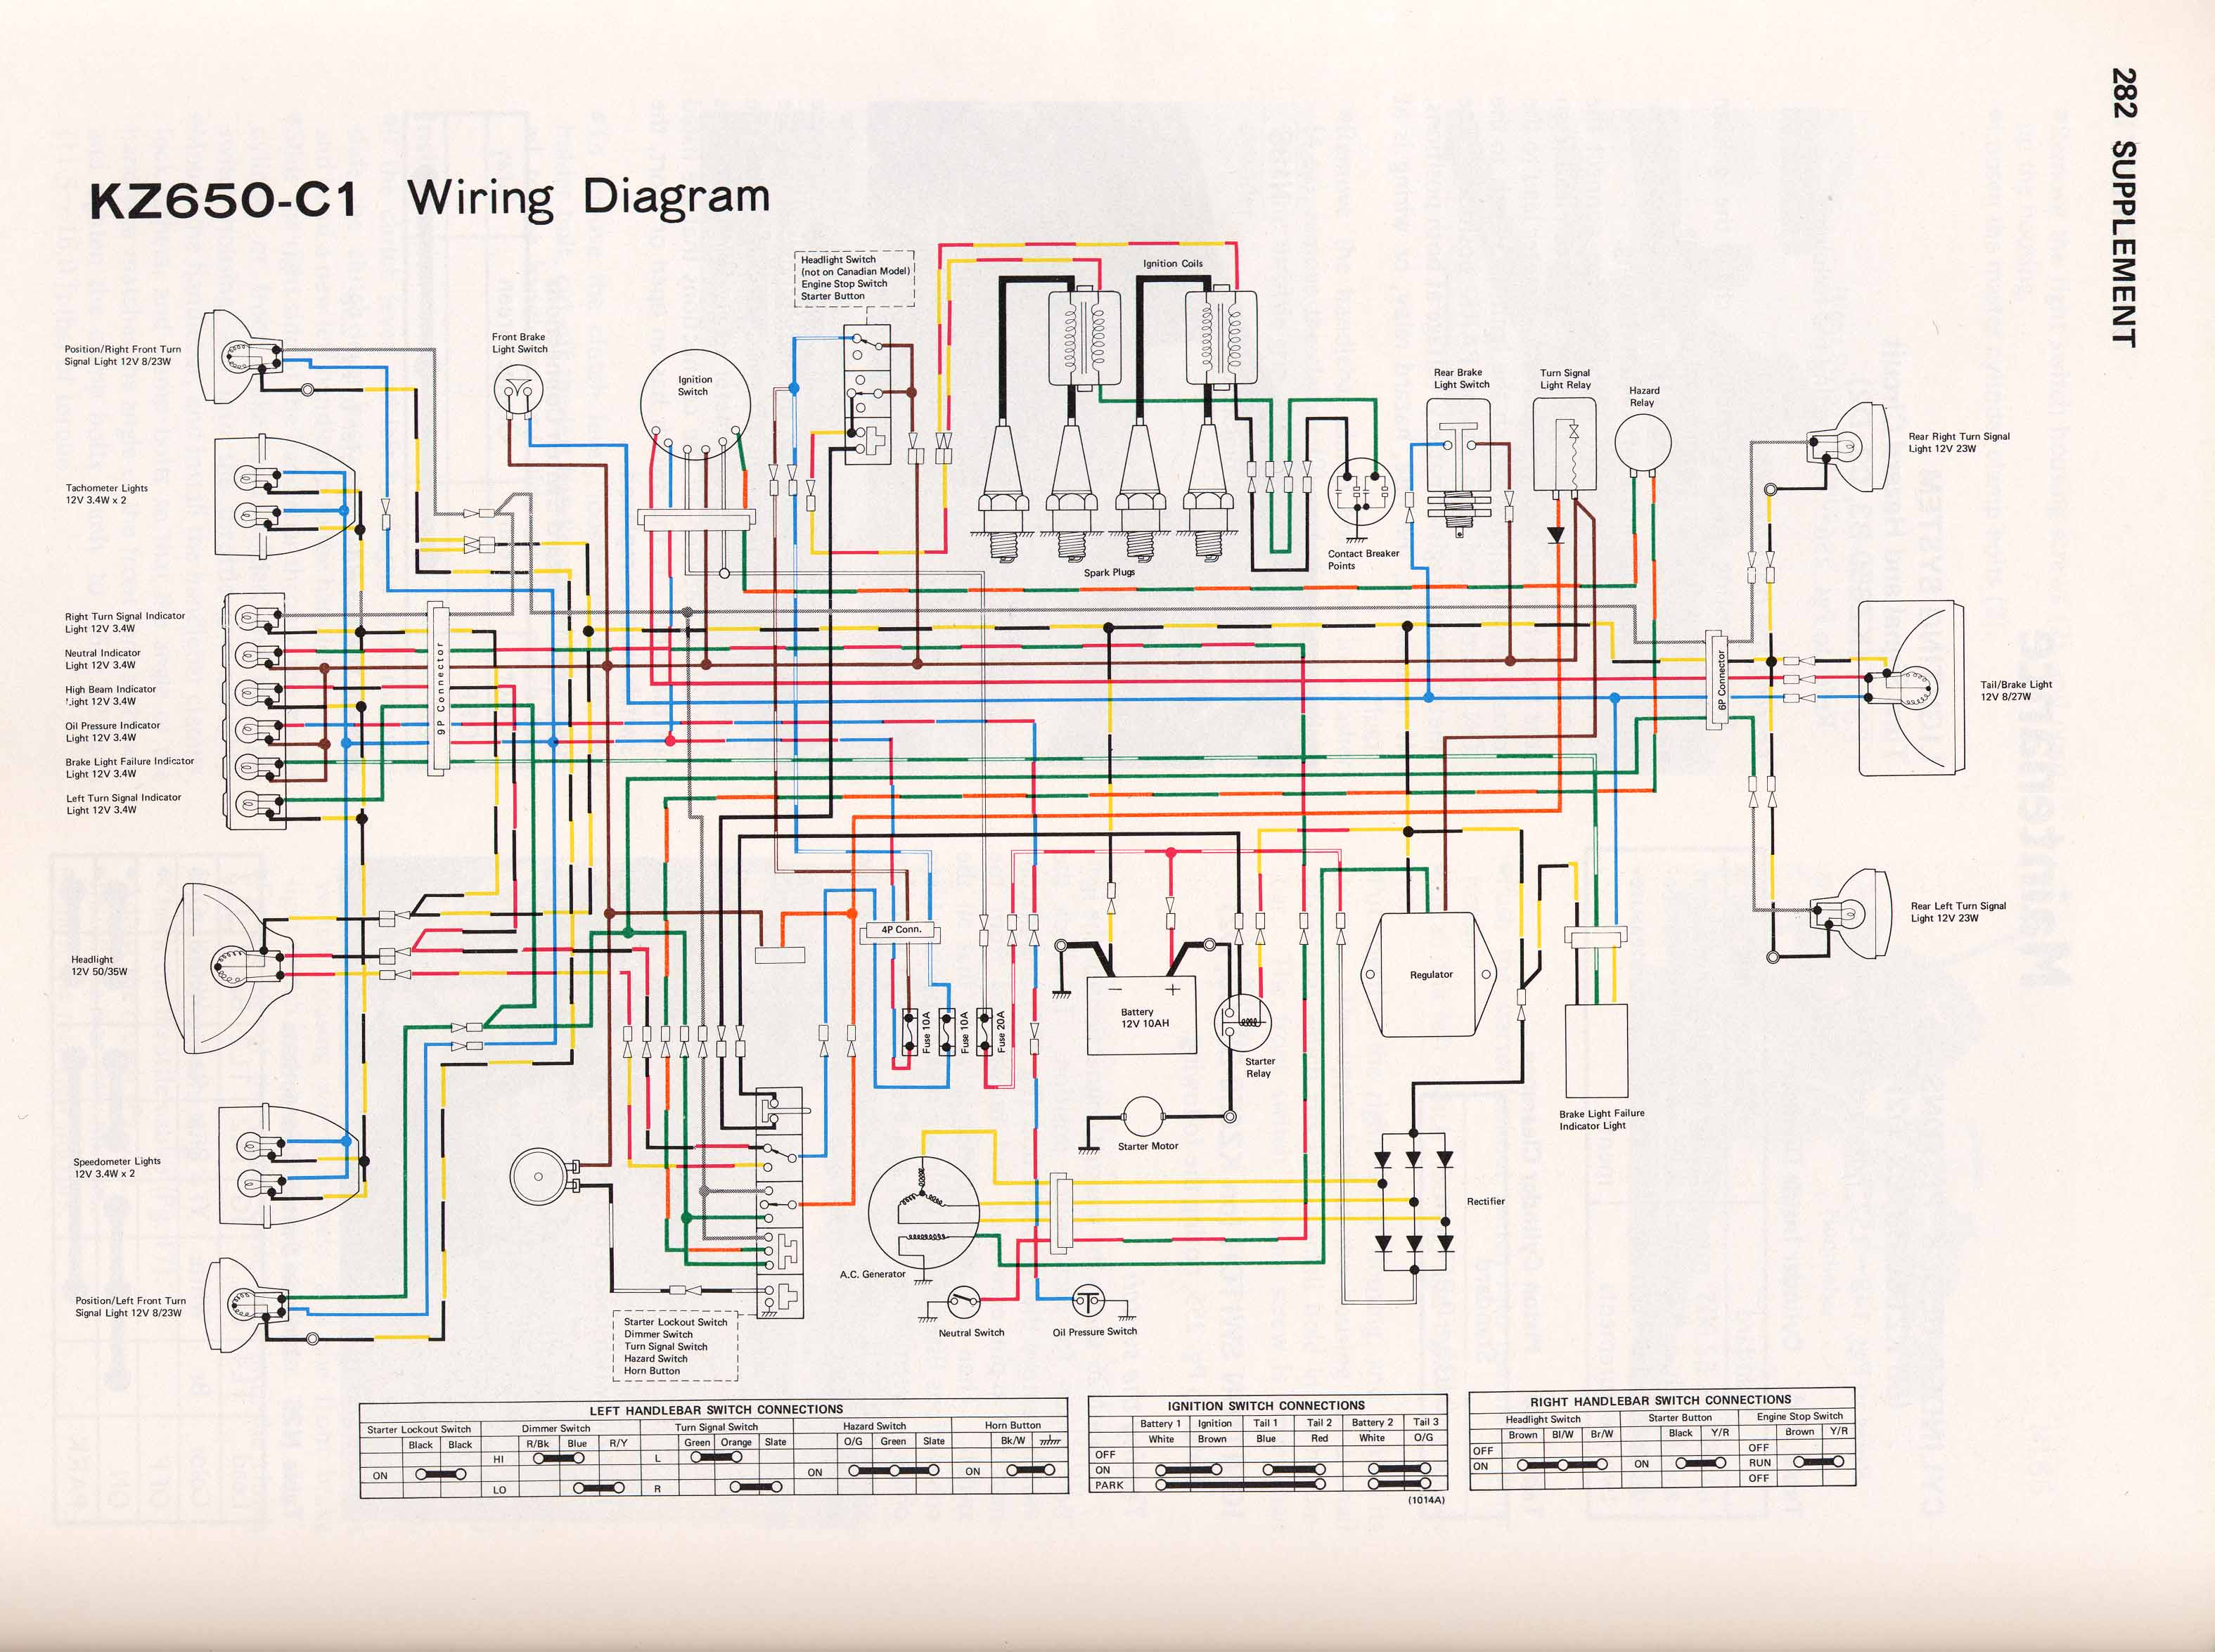 1979 Kawasaki Kz1000 Wiring Diagram Libraries Chevy Diagrams Besides Ignition Switch Ltd Third Level2001 Level